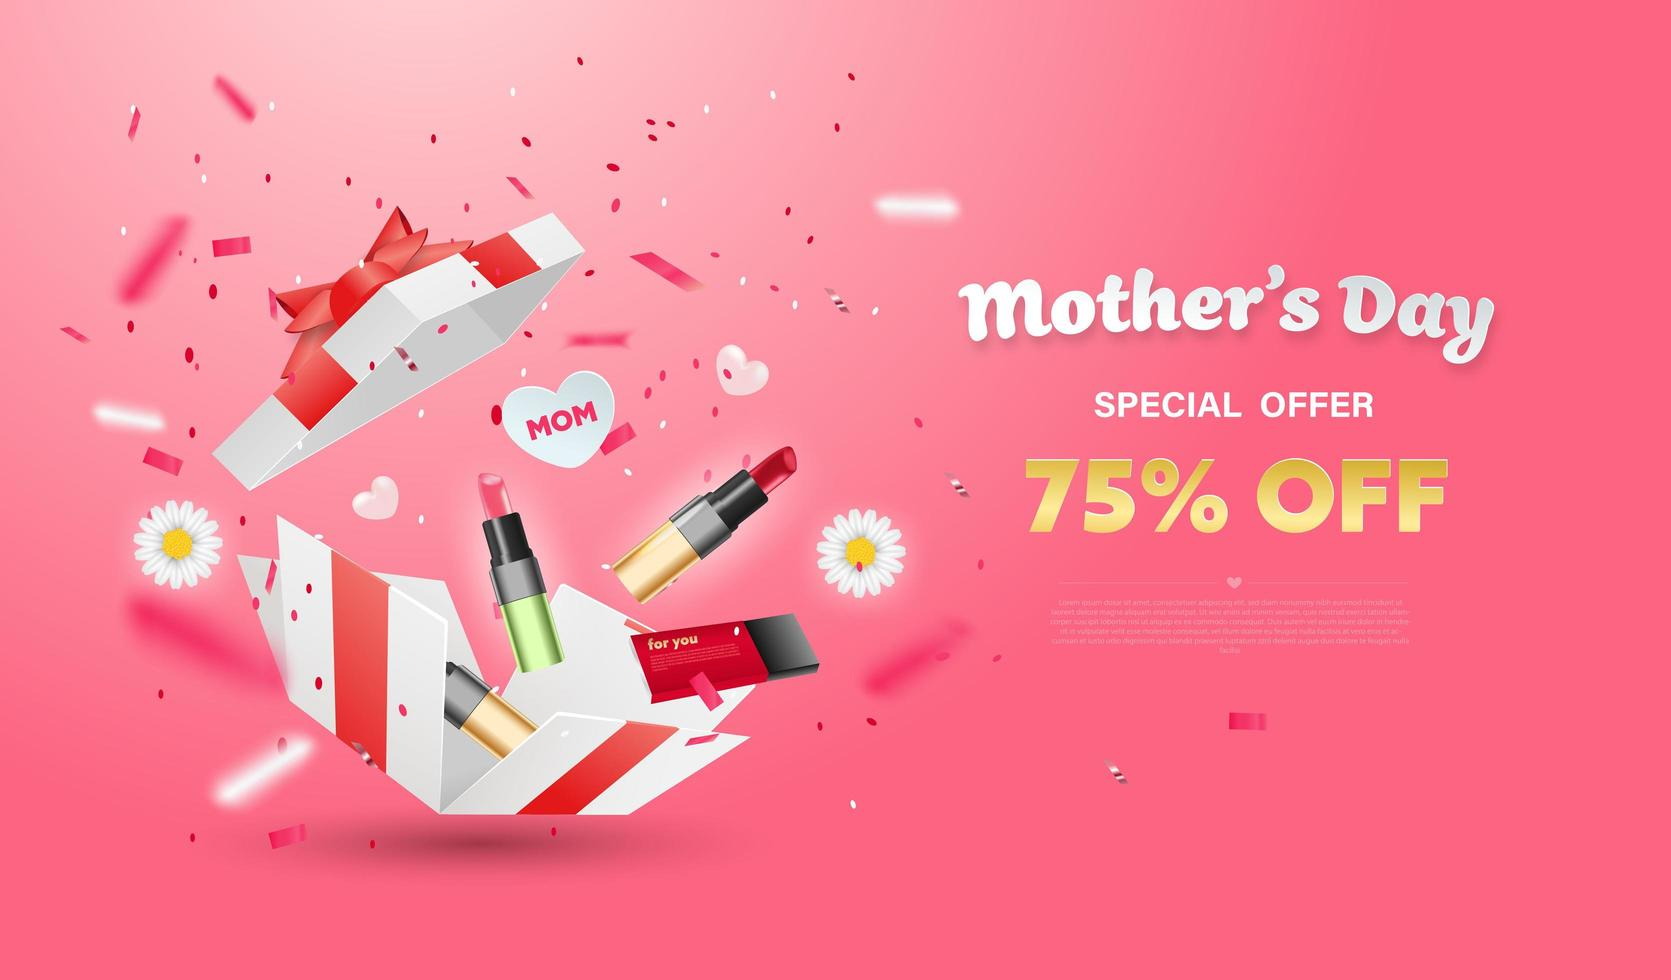 Mother's Day Surprise Box Design vector